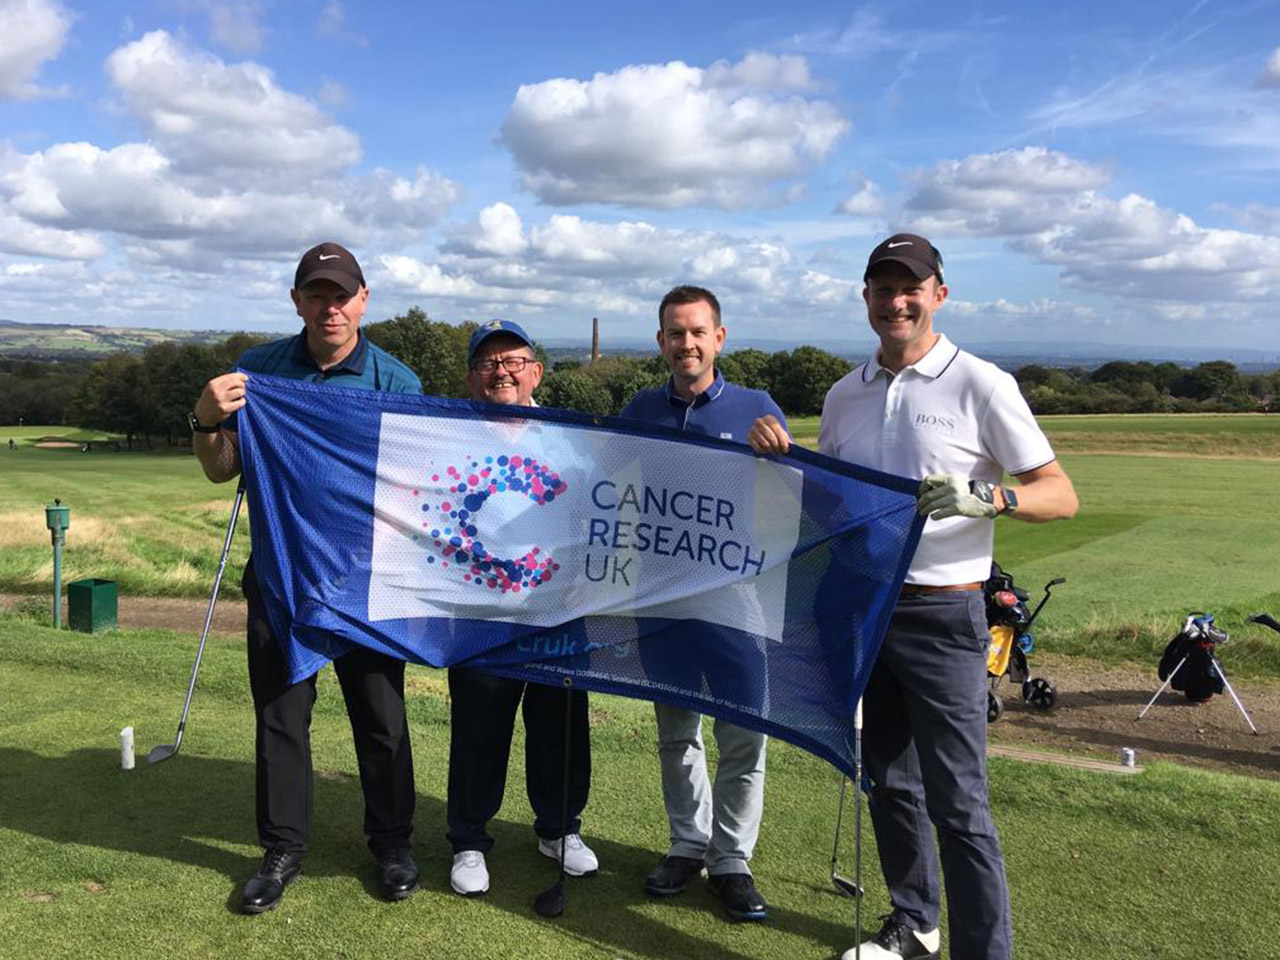 Cancer Research Golf Day